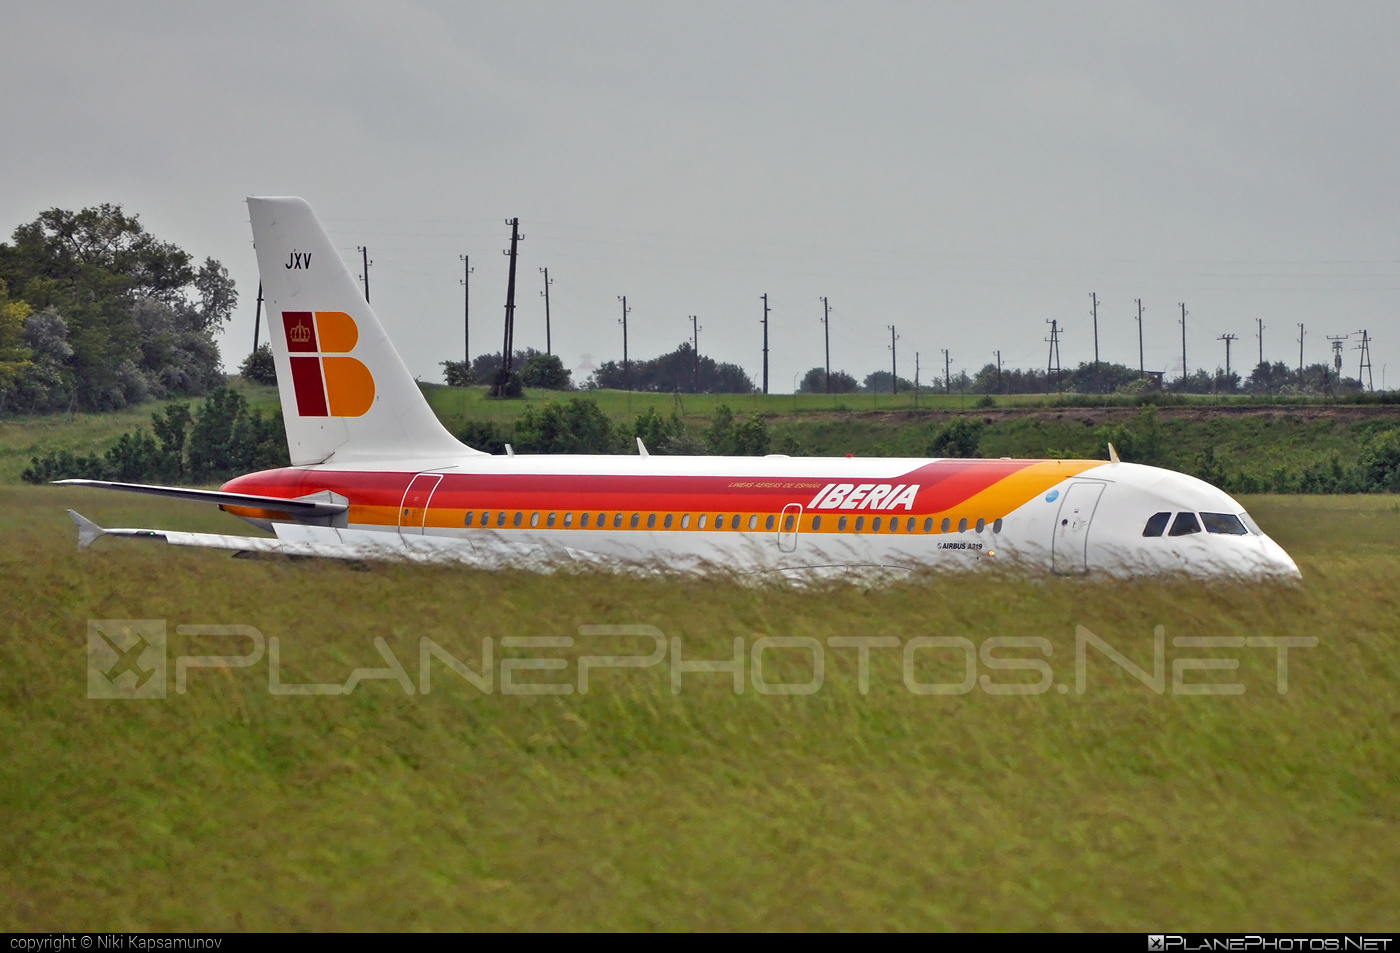 Airbus A319-111 - EC-JXV operated by Iberia #a319 #a320family #airbus #airbus319 #iberia